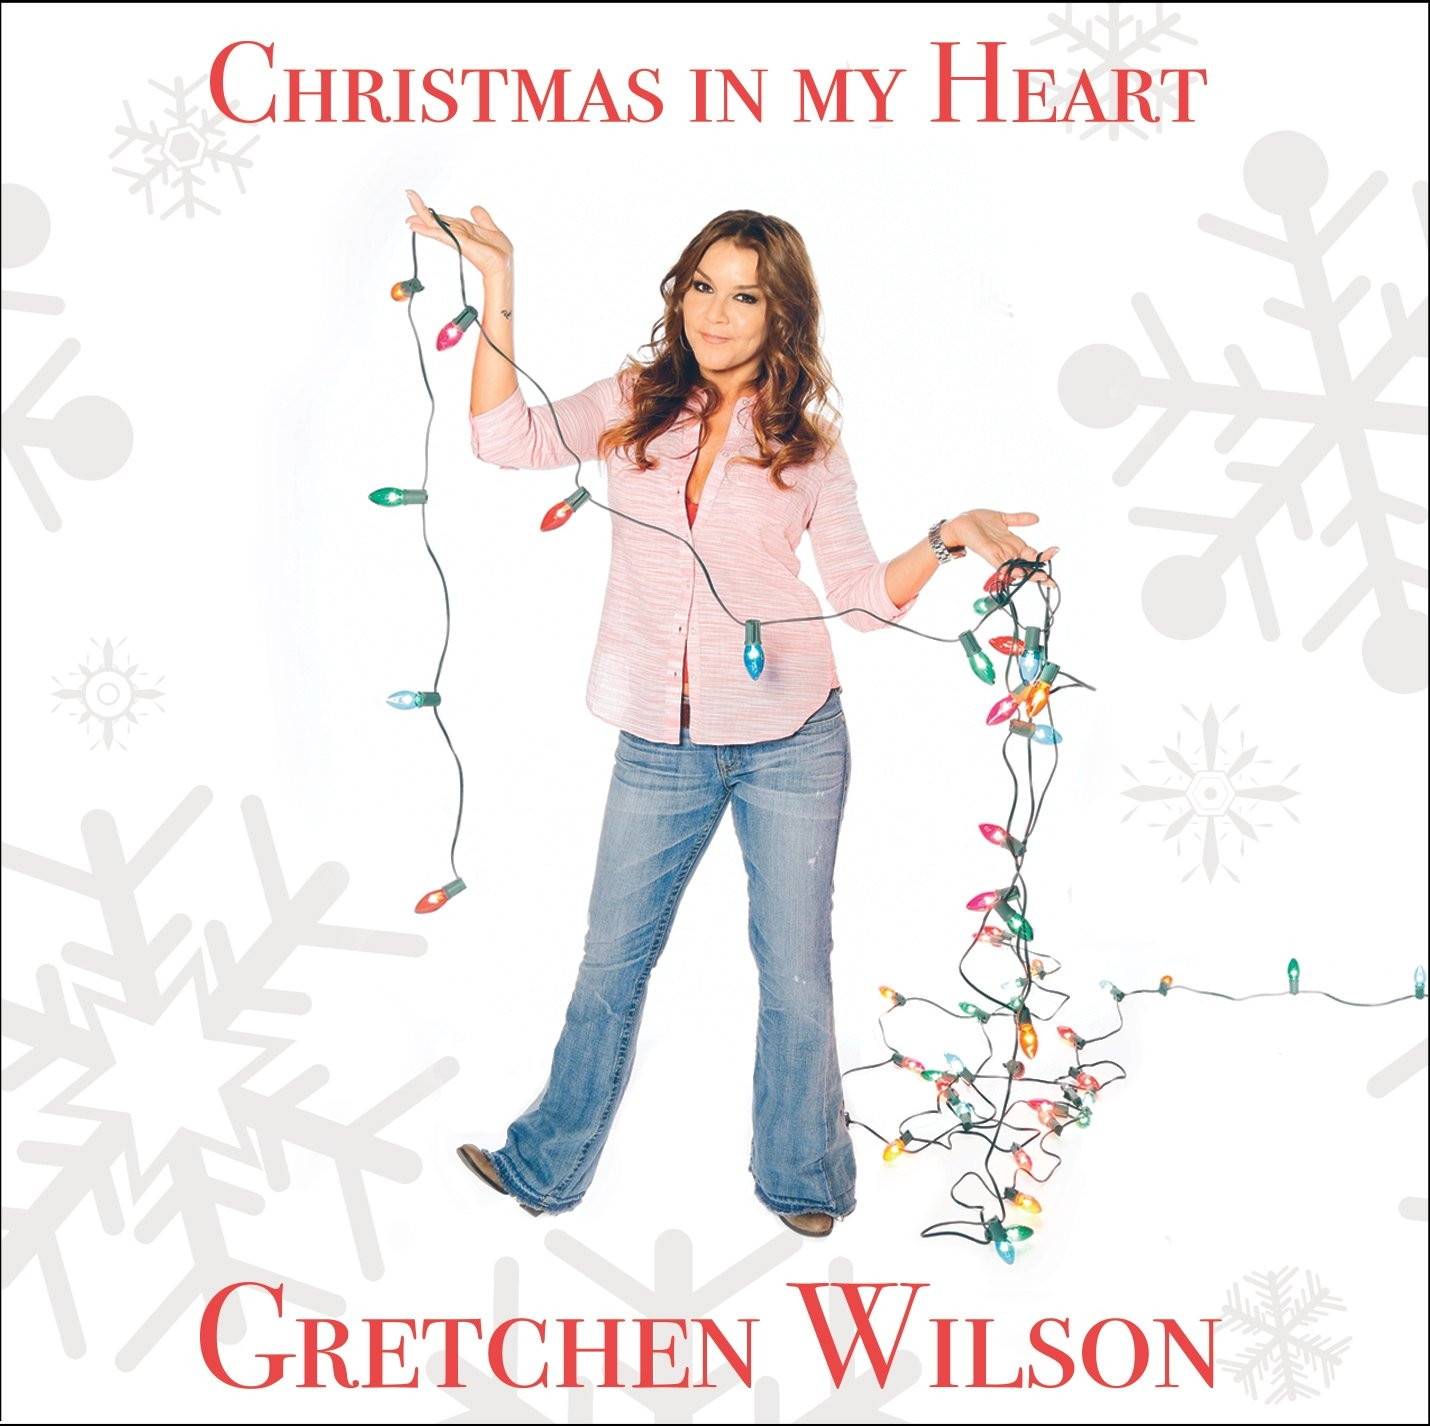 gretchen wilson christmas in my heart amazoncom music - Christmas In My Heart